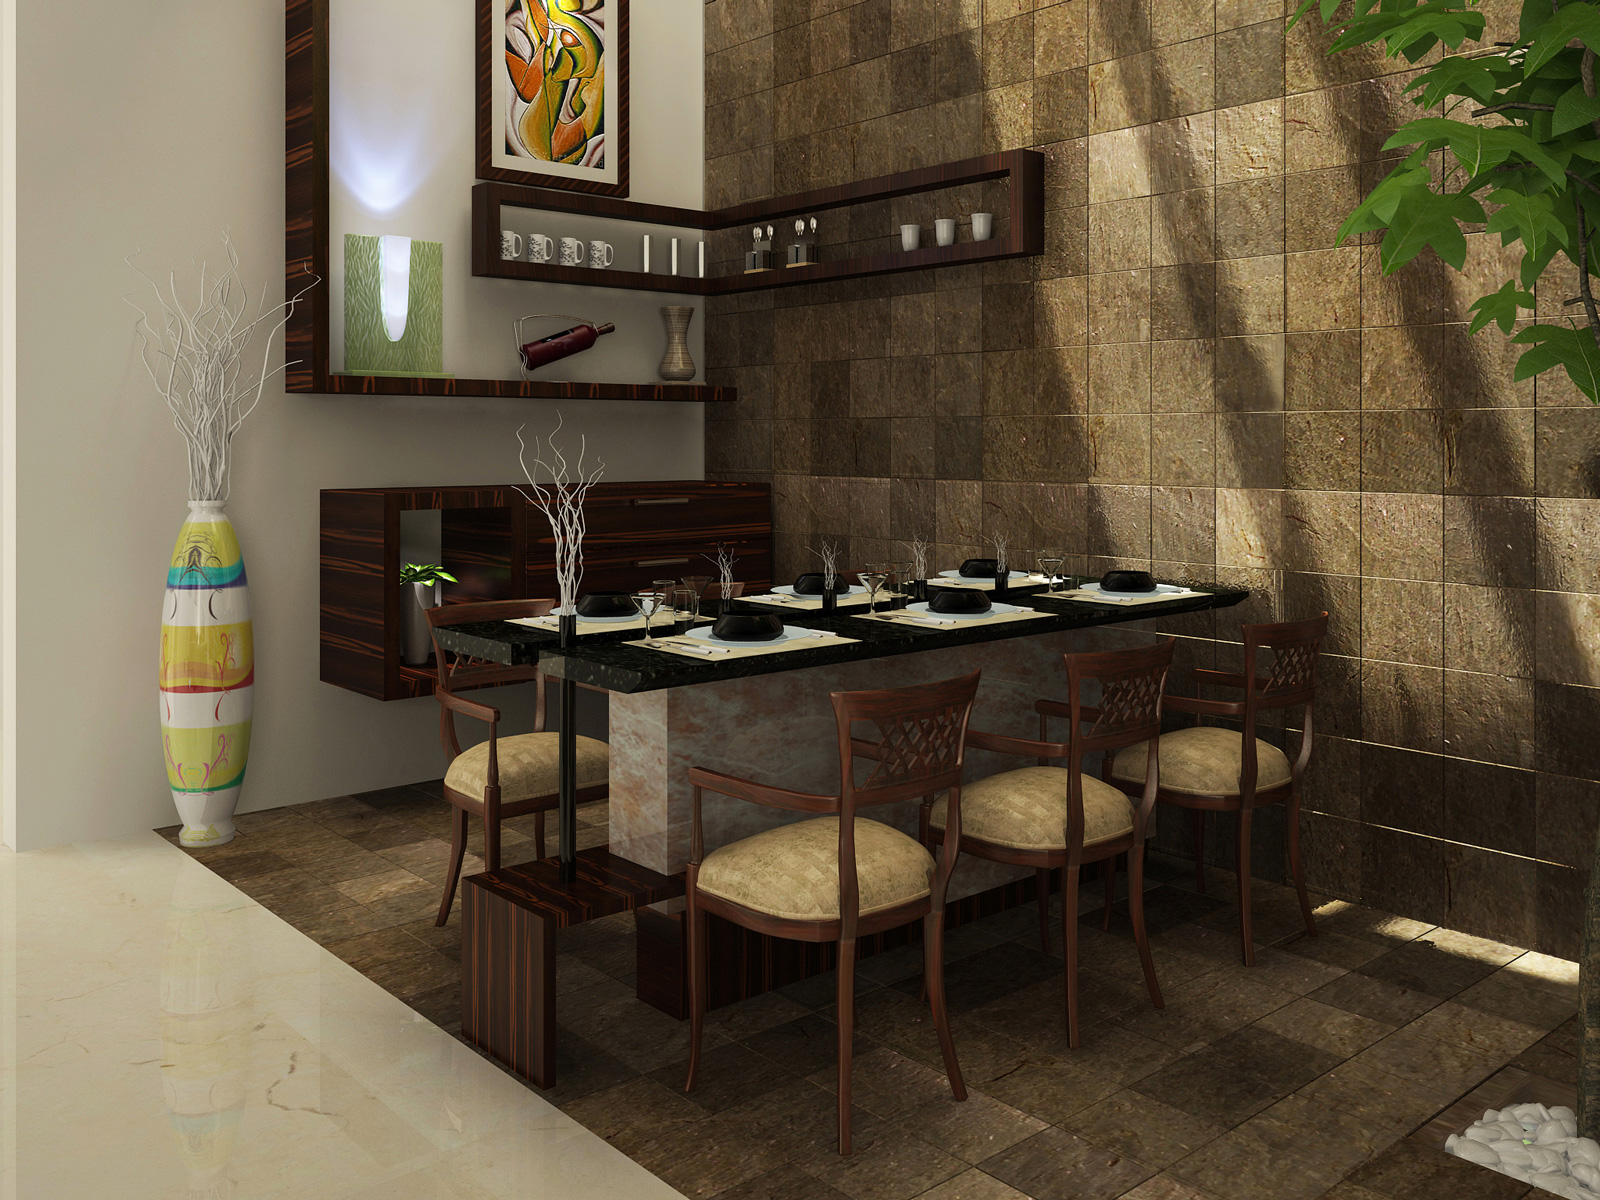 Dining kitchen living room interior designs kerala home for Dining room designs india